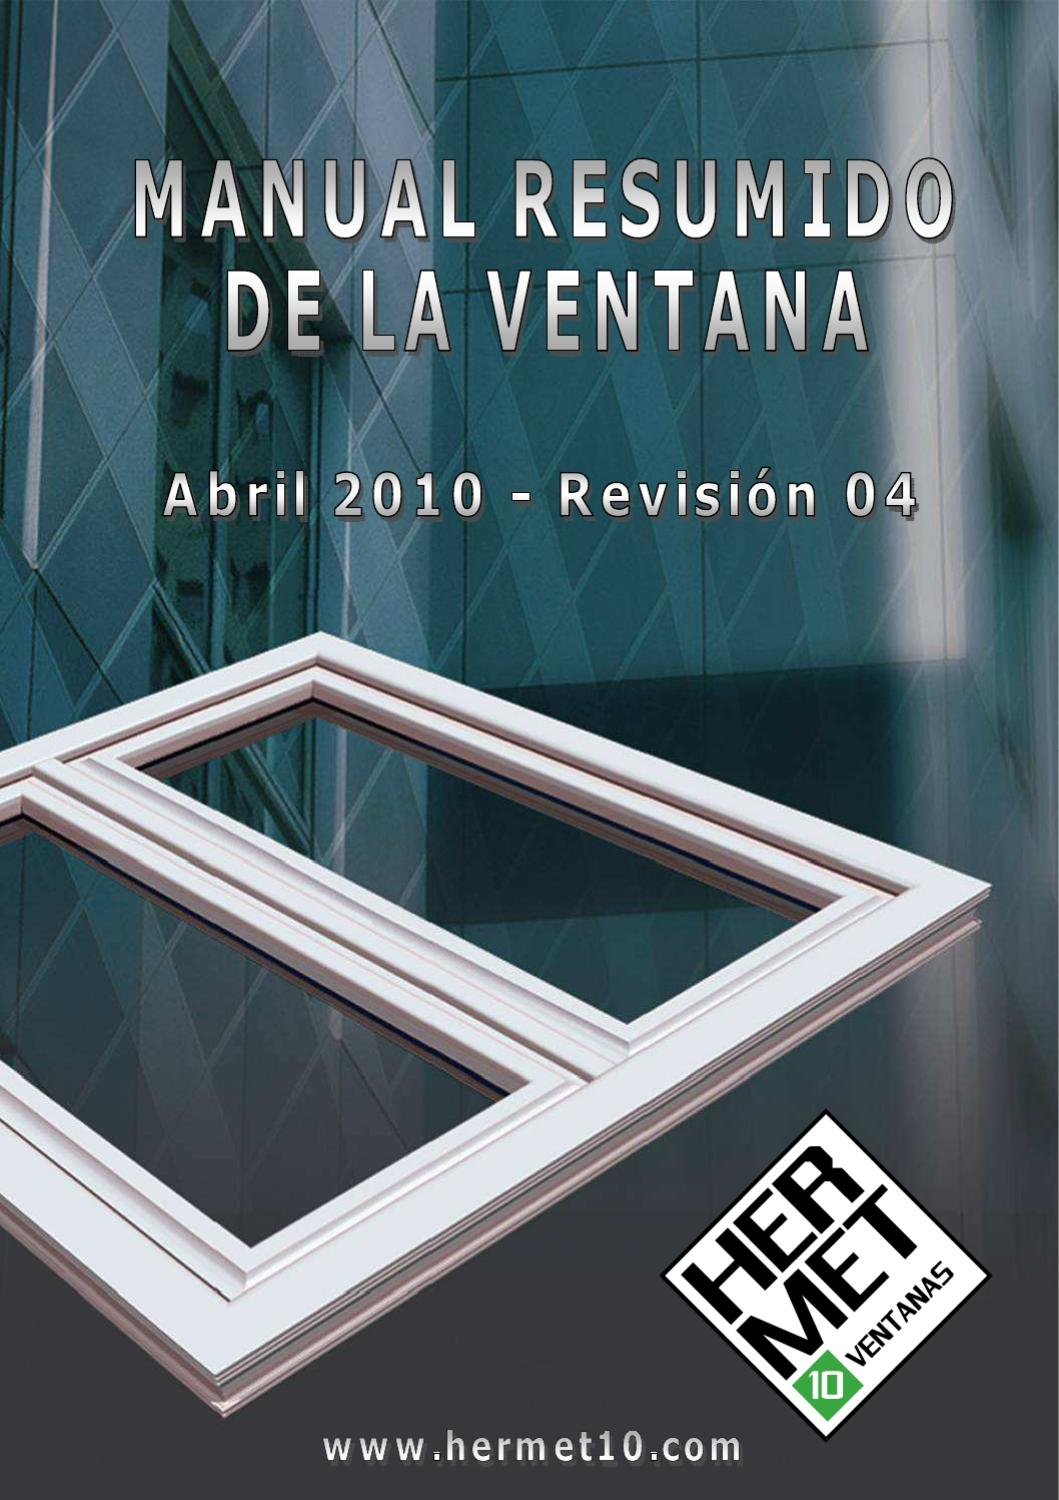 Manual de la ventana Hermet10 by HERMET10 - issuu